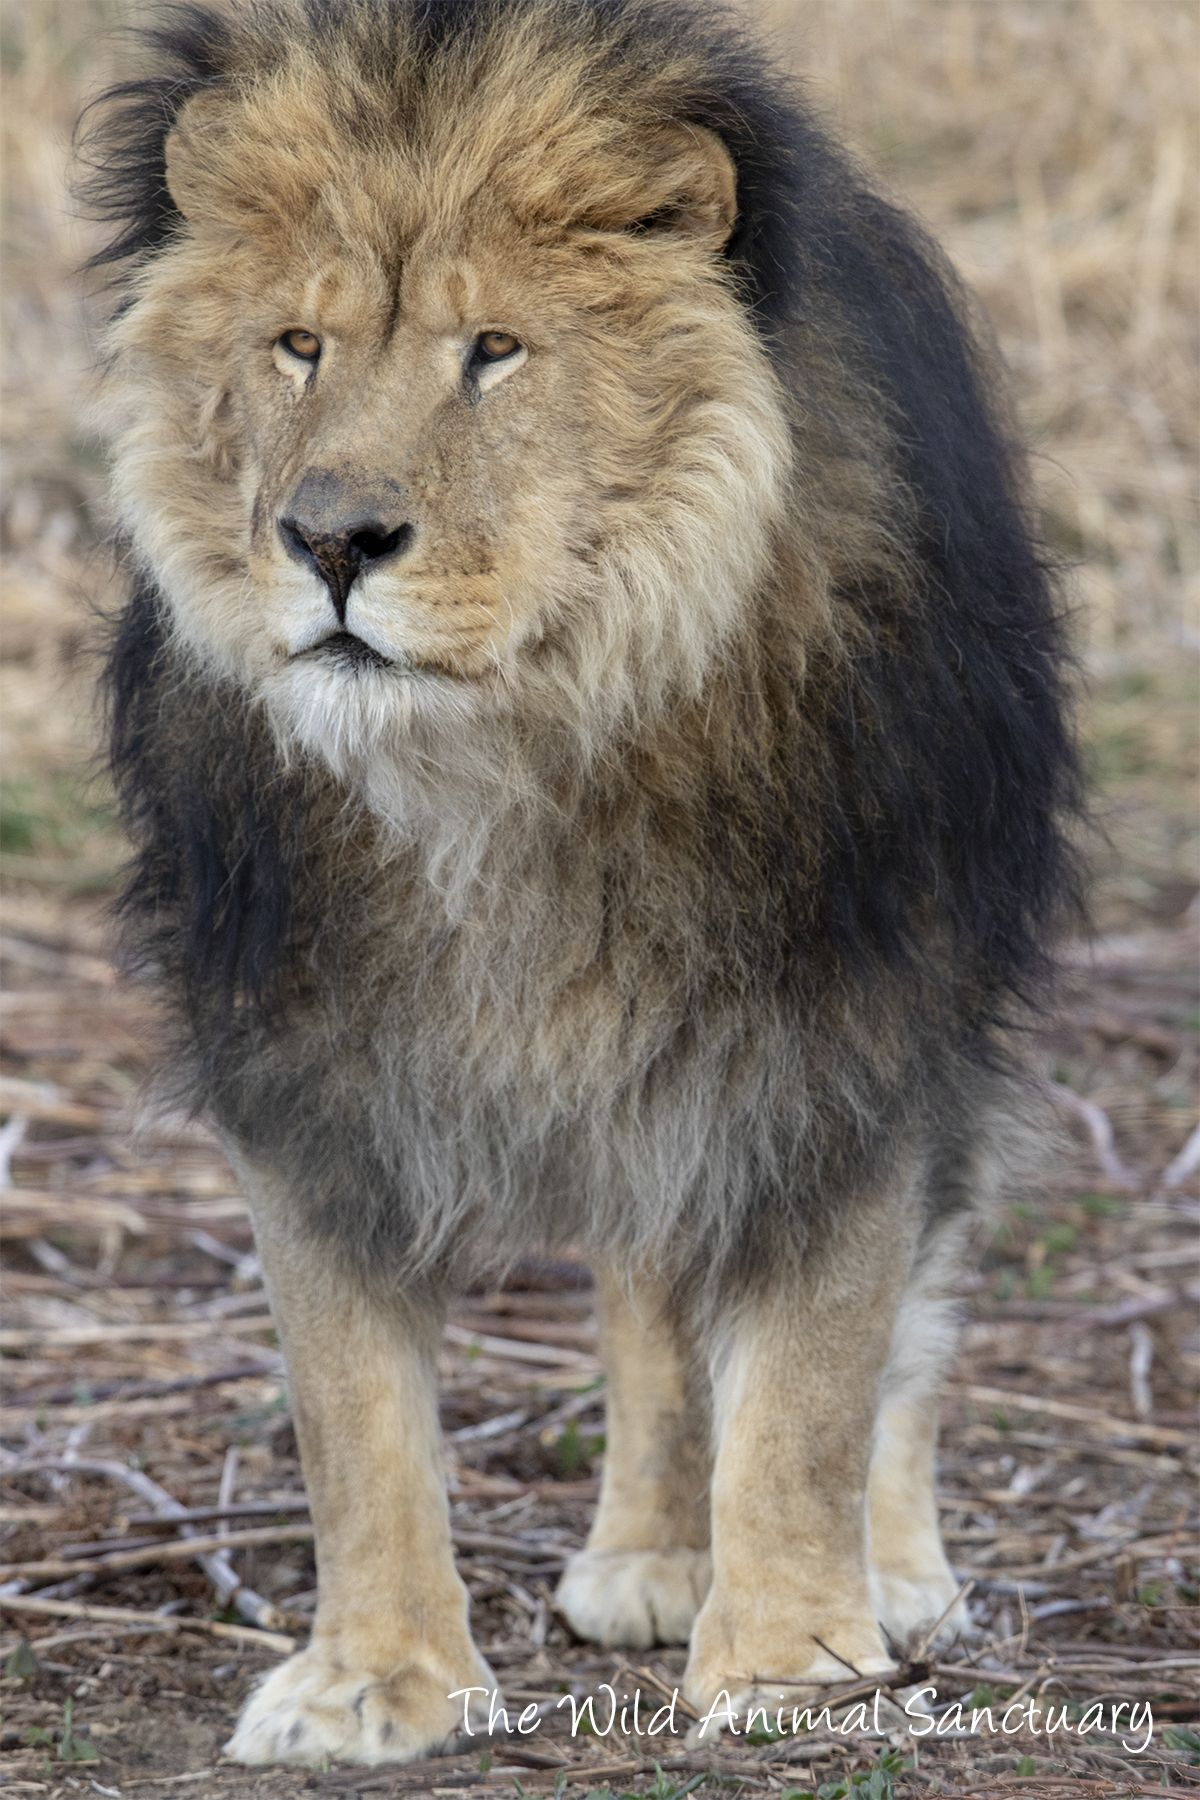 Male African Lion, Ike, was purchased for $450 at an exotic